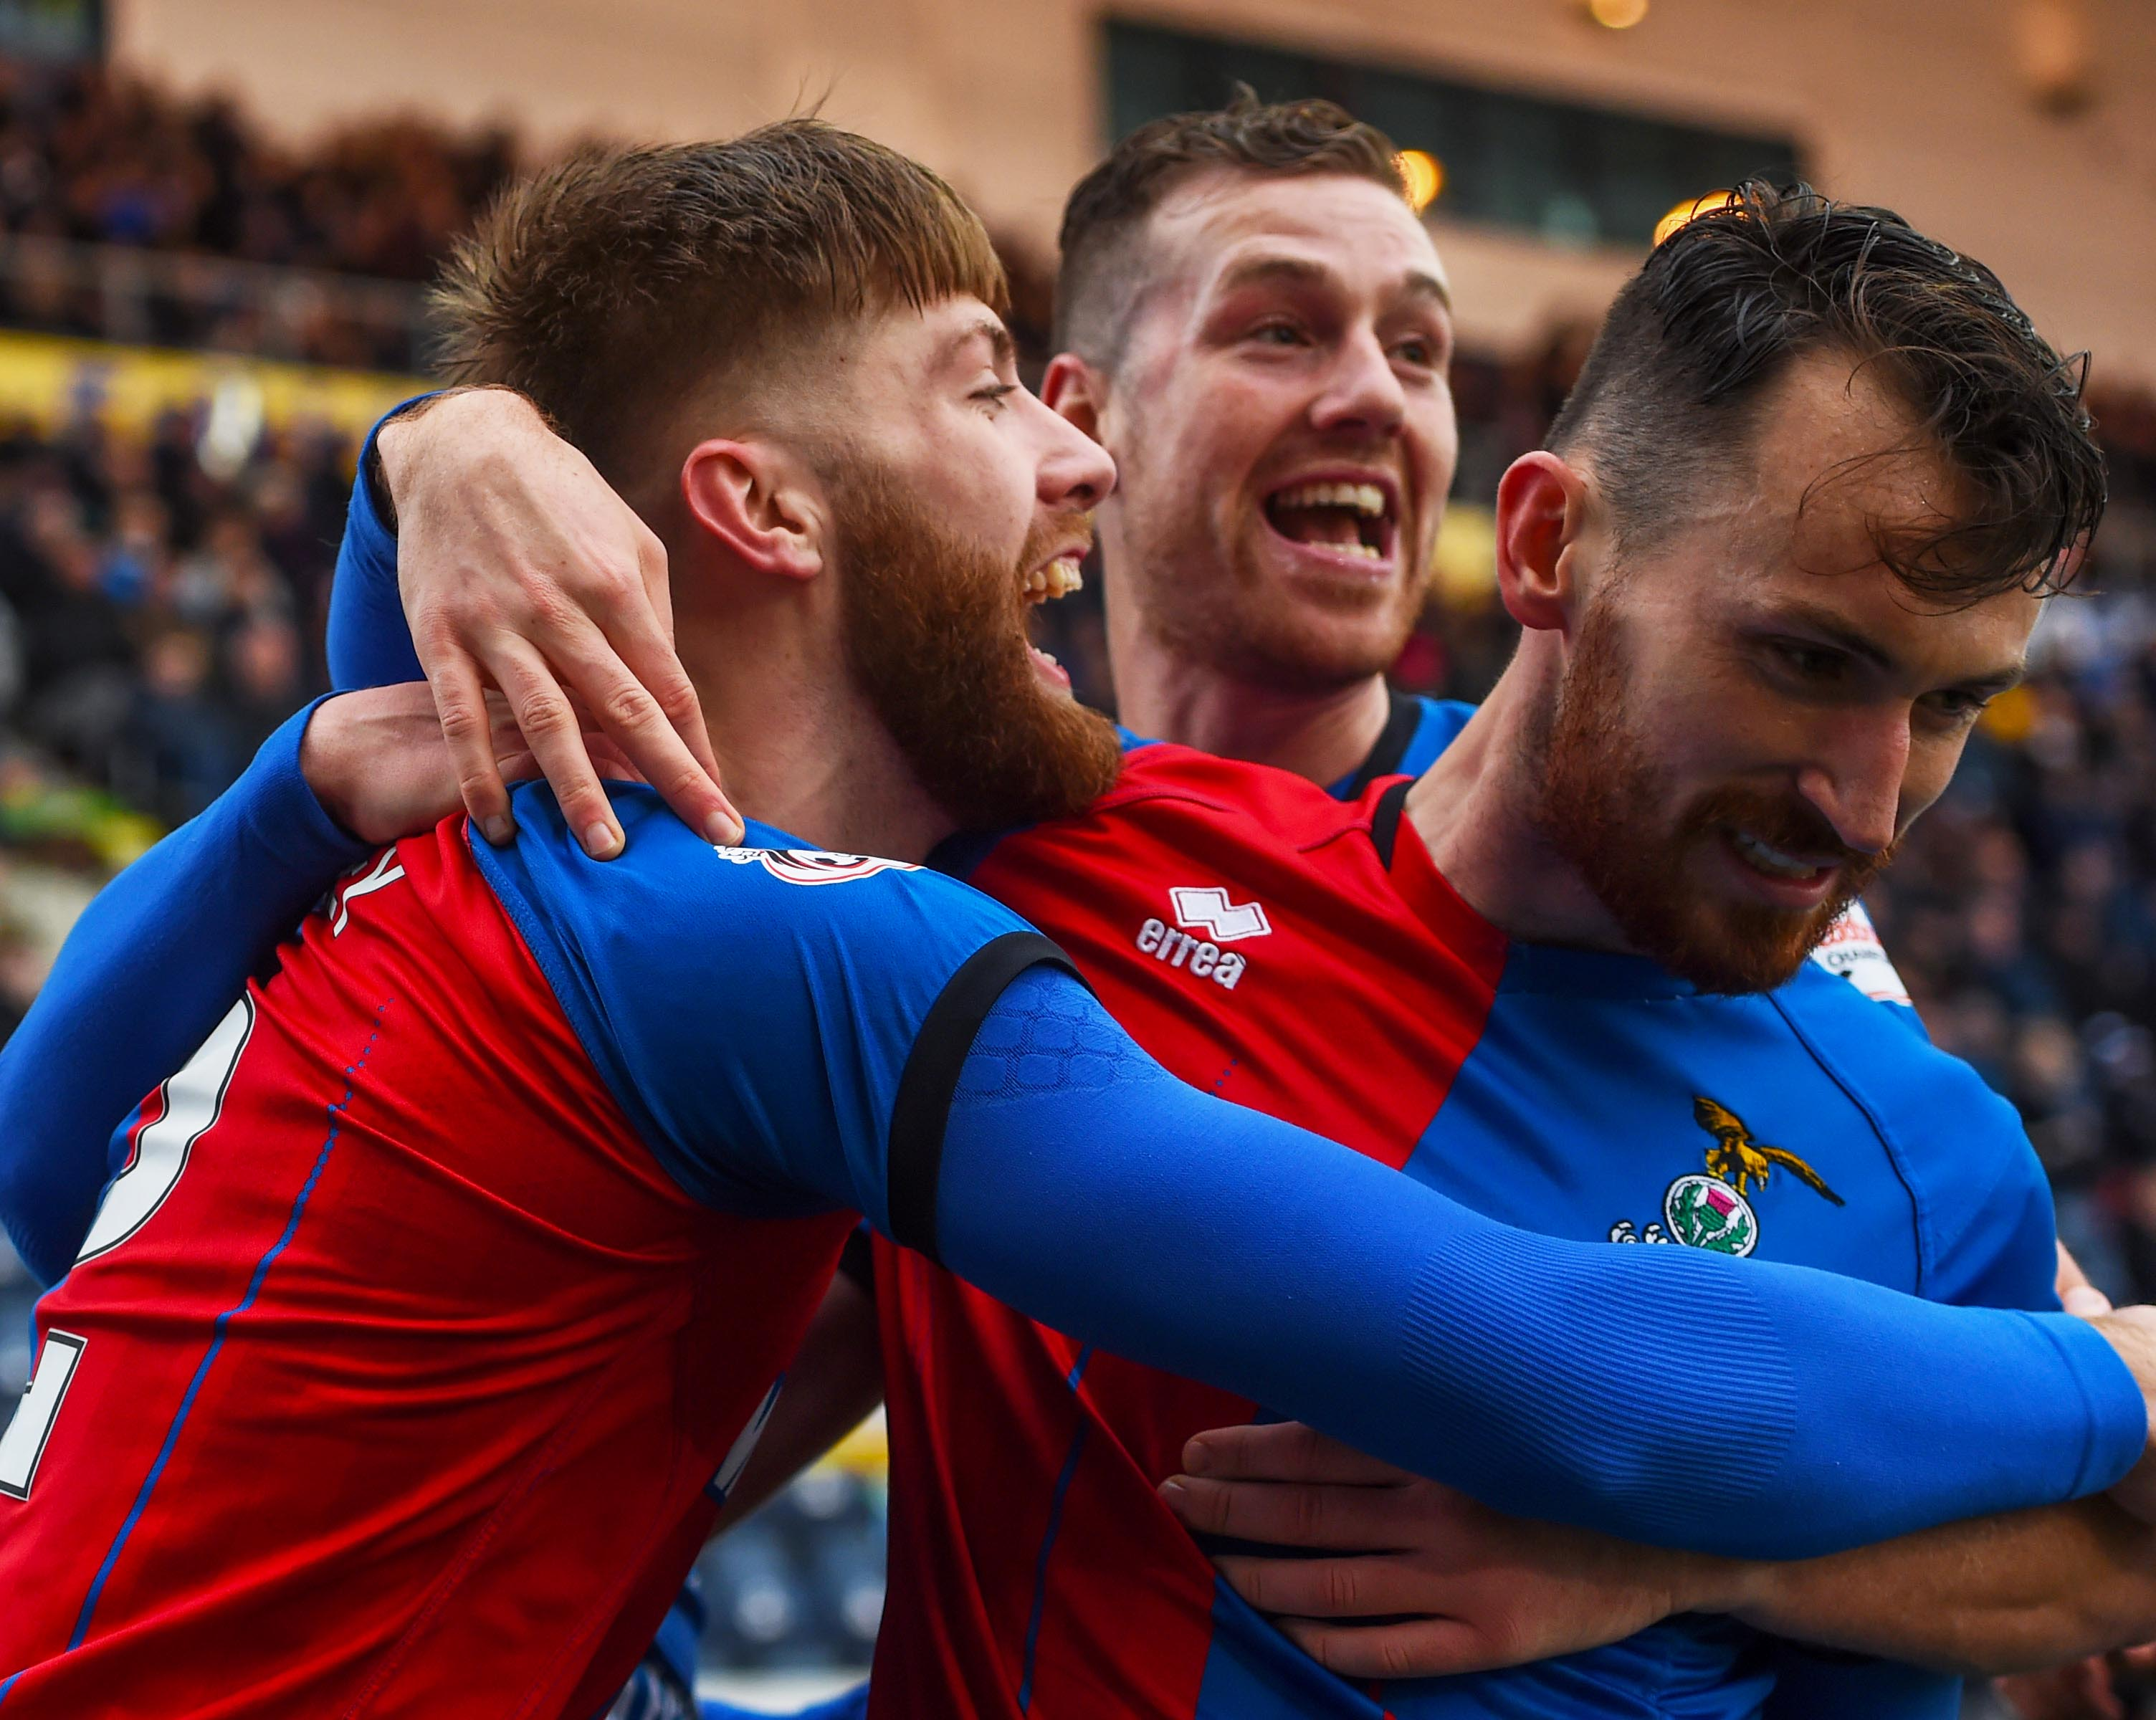 Shaun Rooney opened the scoring for Inverness.